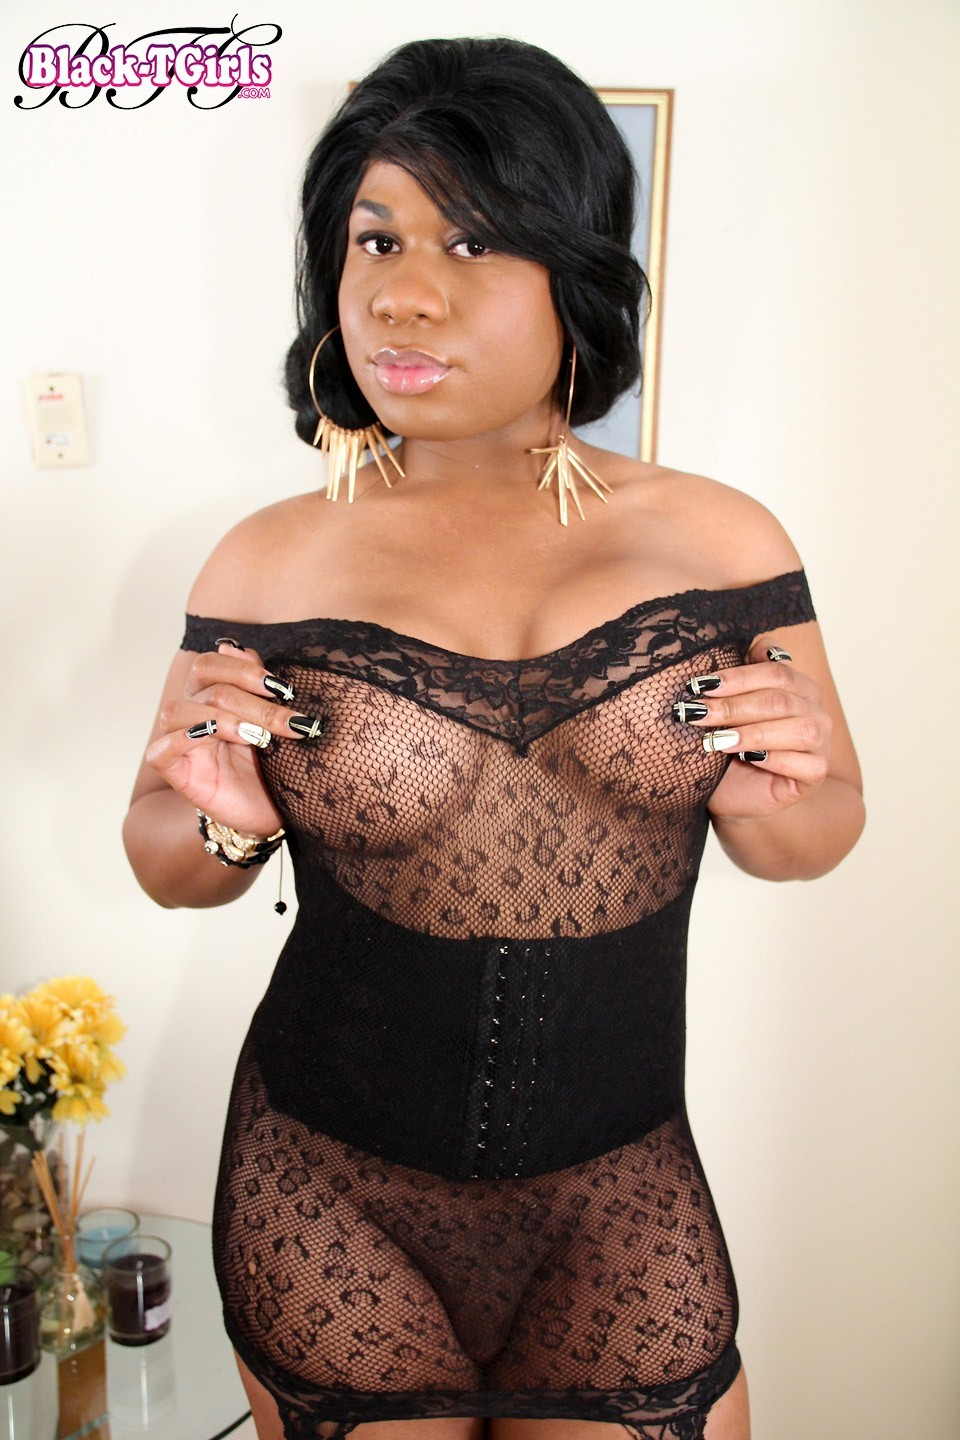 tgirl asia hilton in black lace